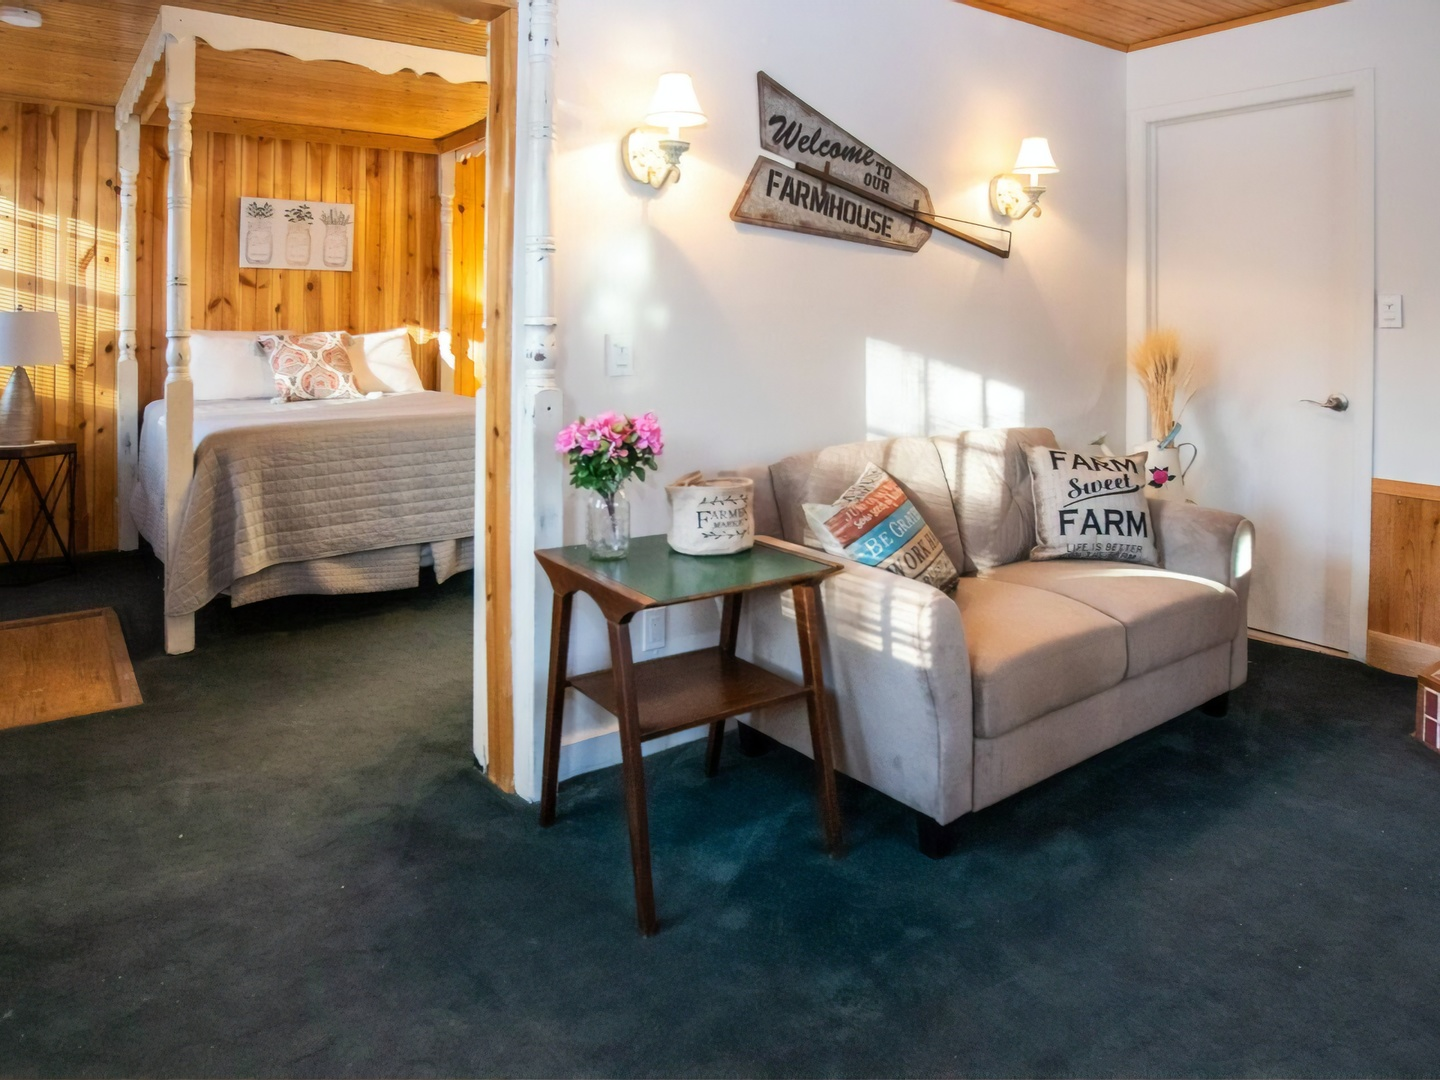 A bedroom with a wooden floor at Lazy Cloud Lodge Bed & Breakfast.